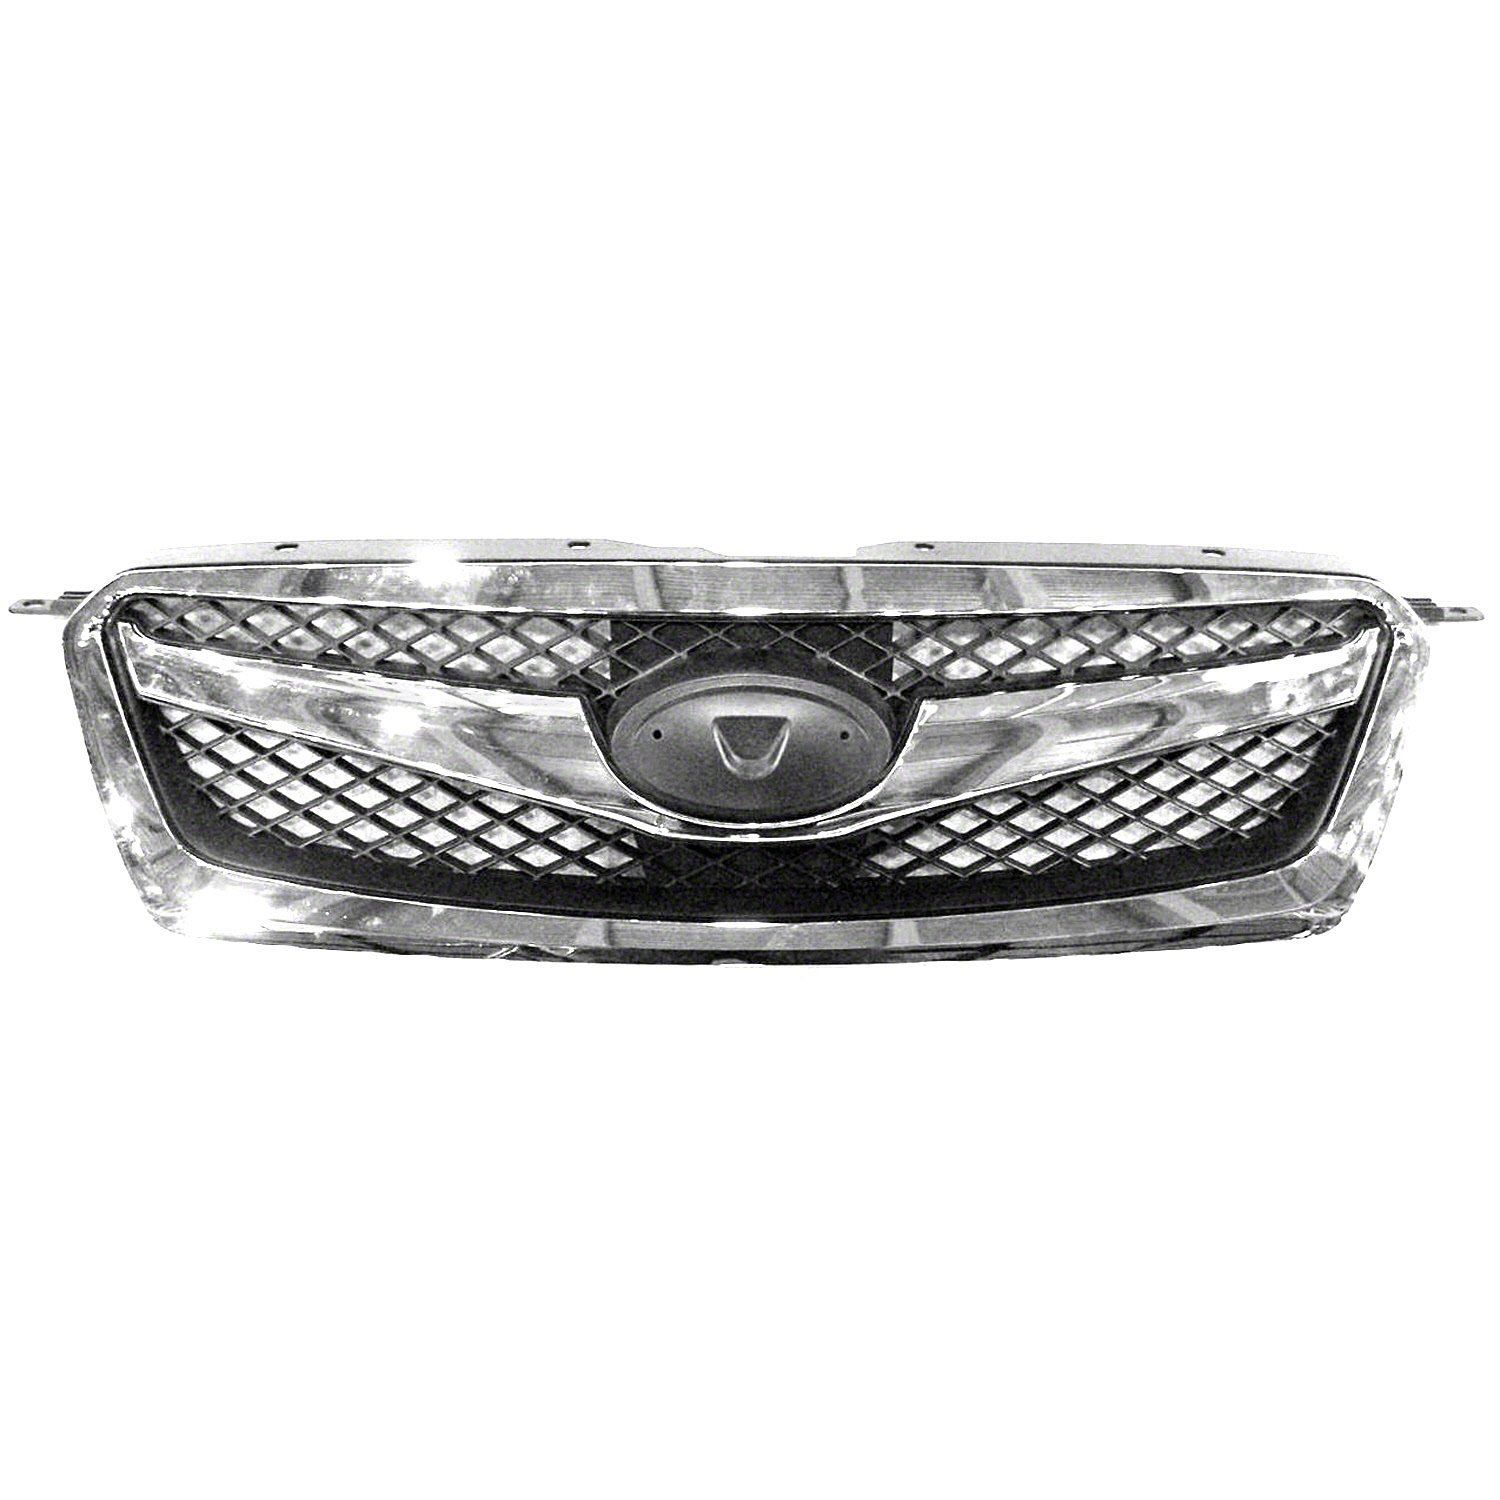 Crash Parts Plus CAPA Front Grille Assembly for 10-12 Subaru Legacy SU1200142